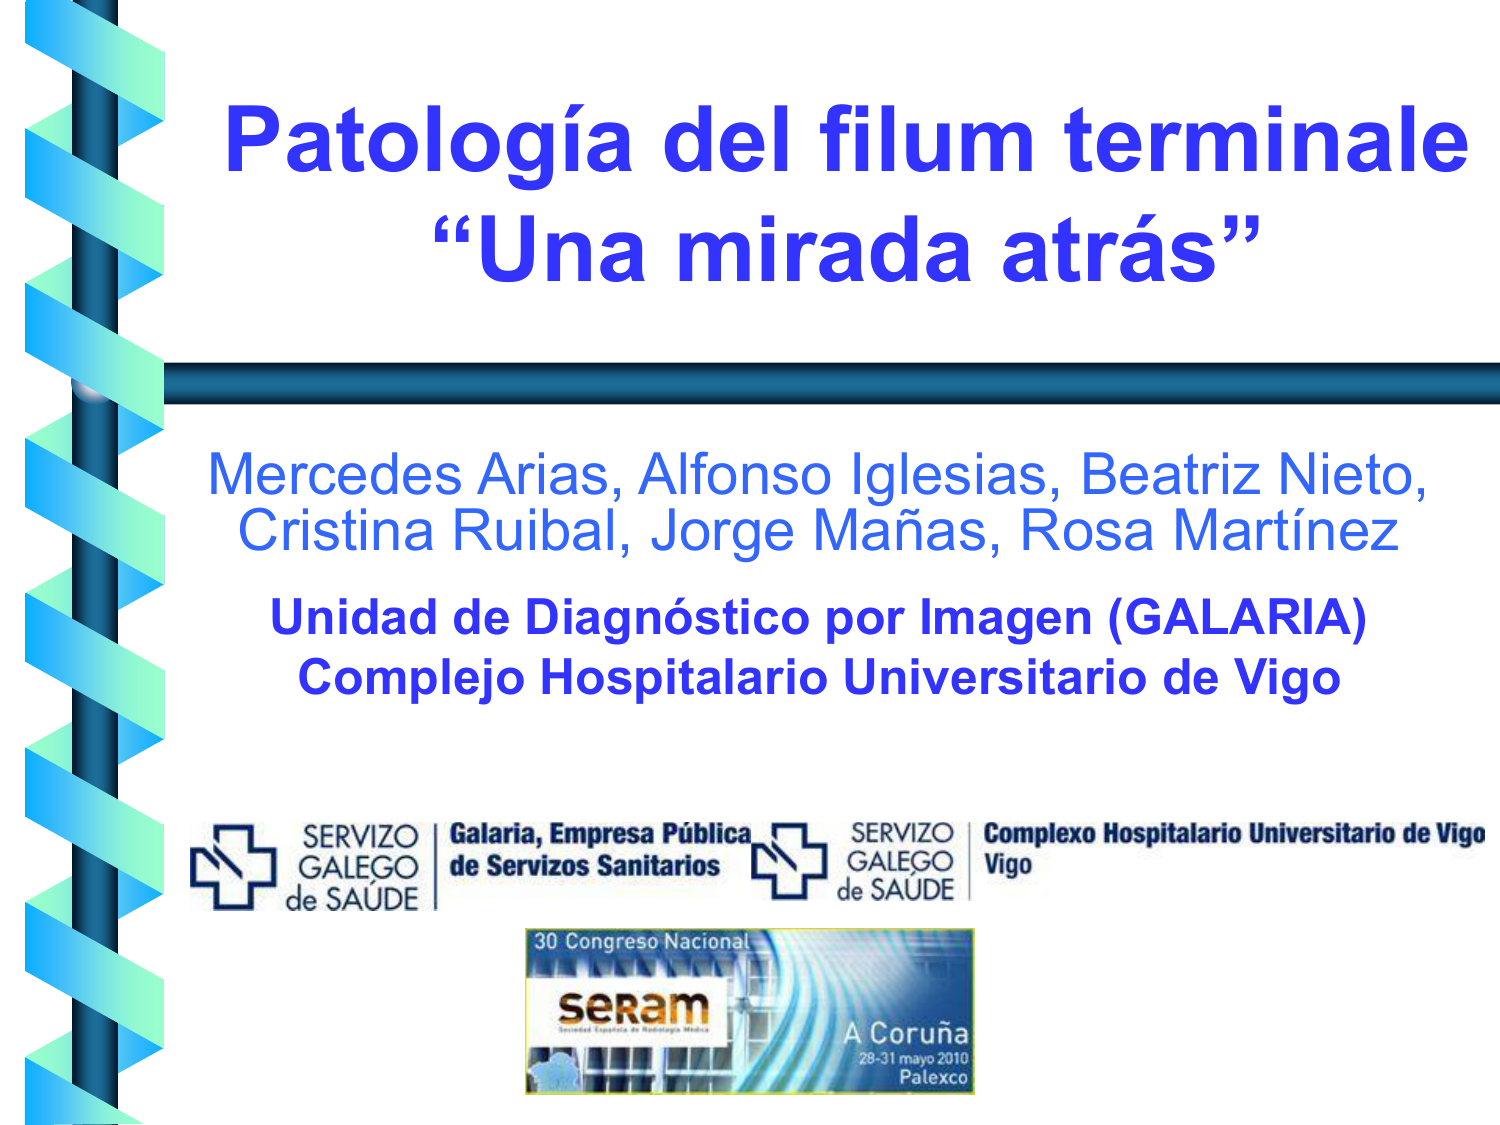 Patologia Del Filum Terminale The filum terminale is a small thin filament of connective tissue that extends inferiorly from the gross anatomy the filum terminale is continuous with the pia mater and is described as having two sec. aprenderly